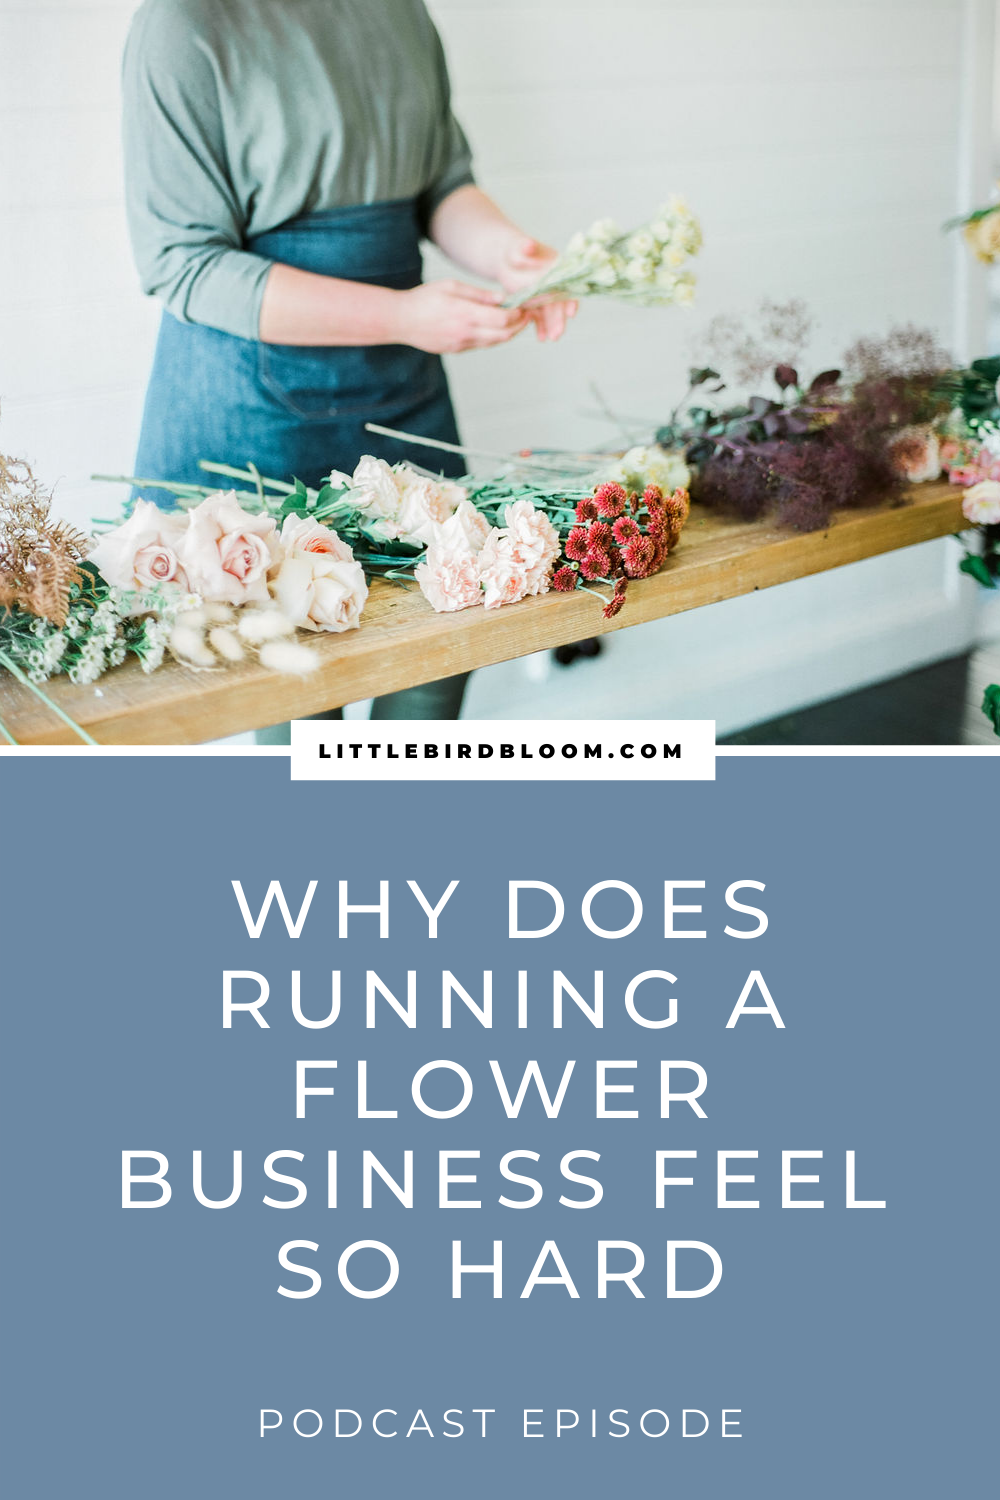 How to run a flower business